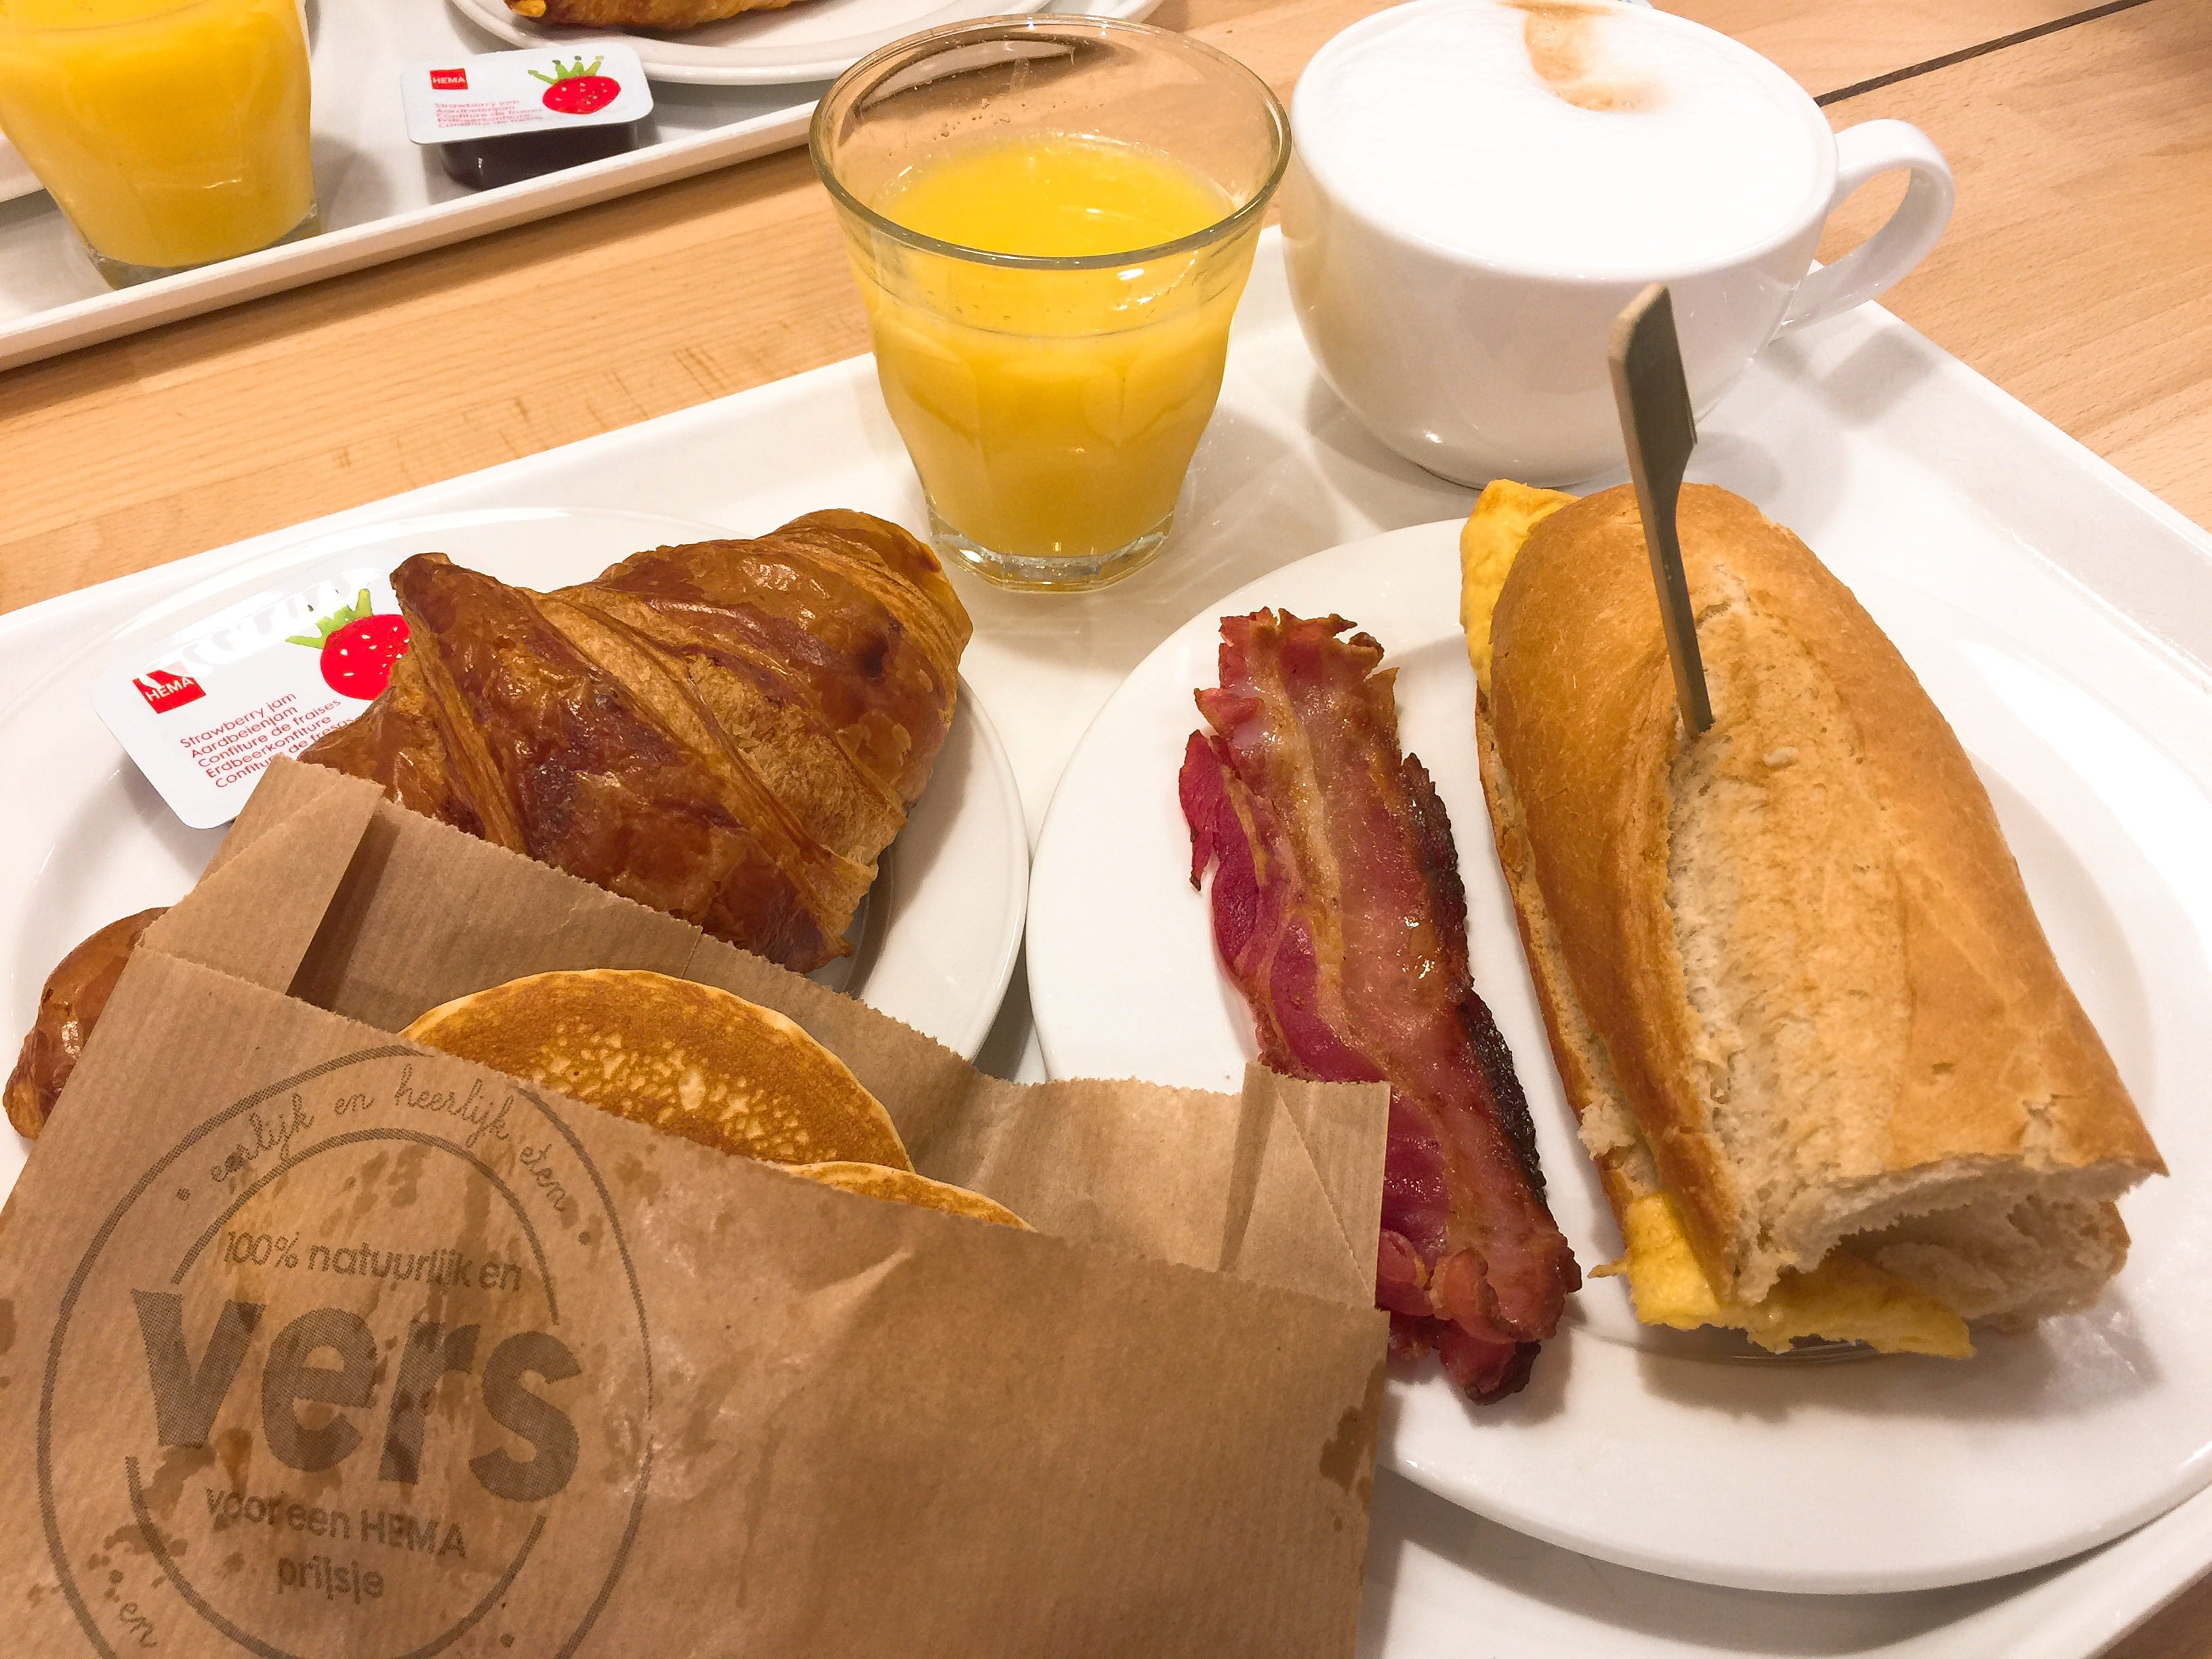 Food: Cheap breakfast in The Hague, Amsterdam and more